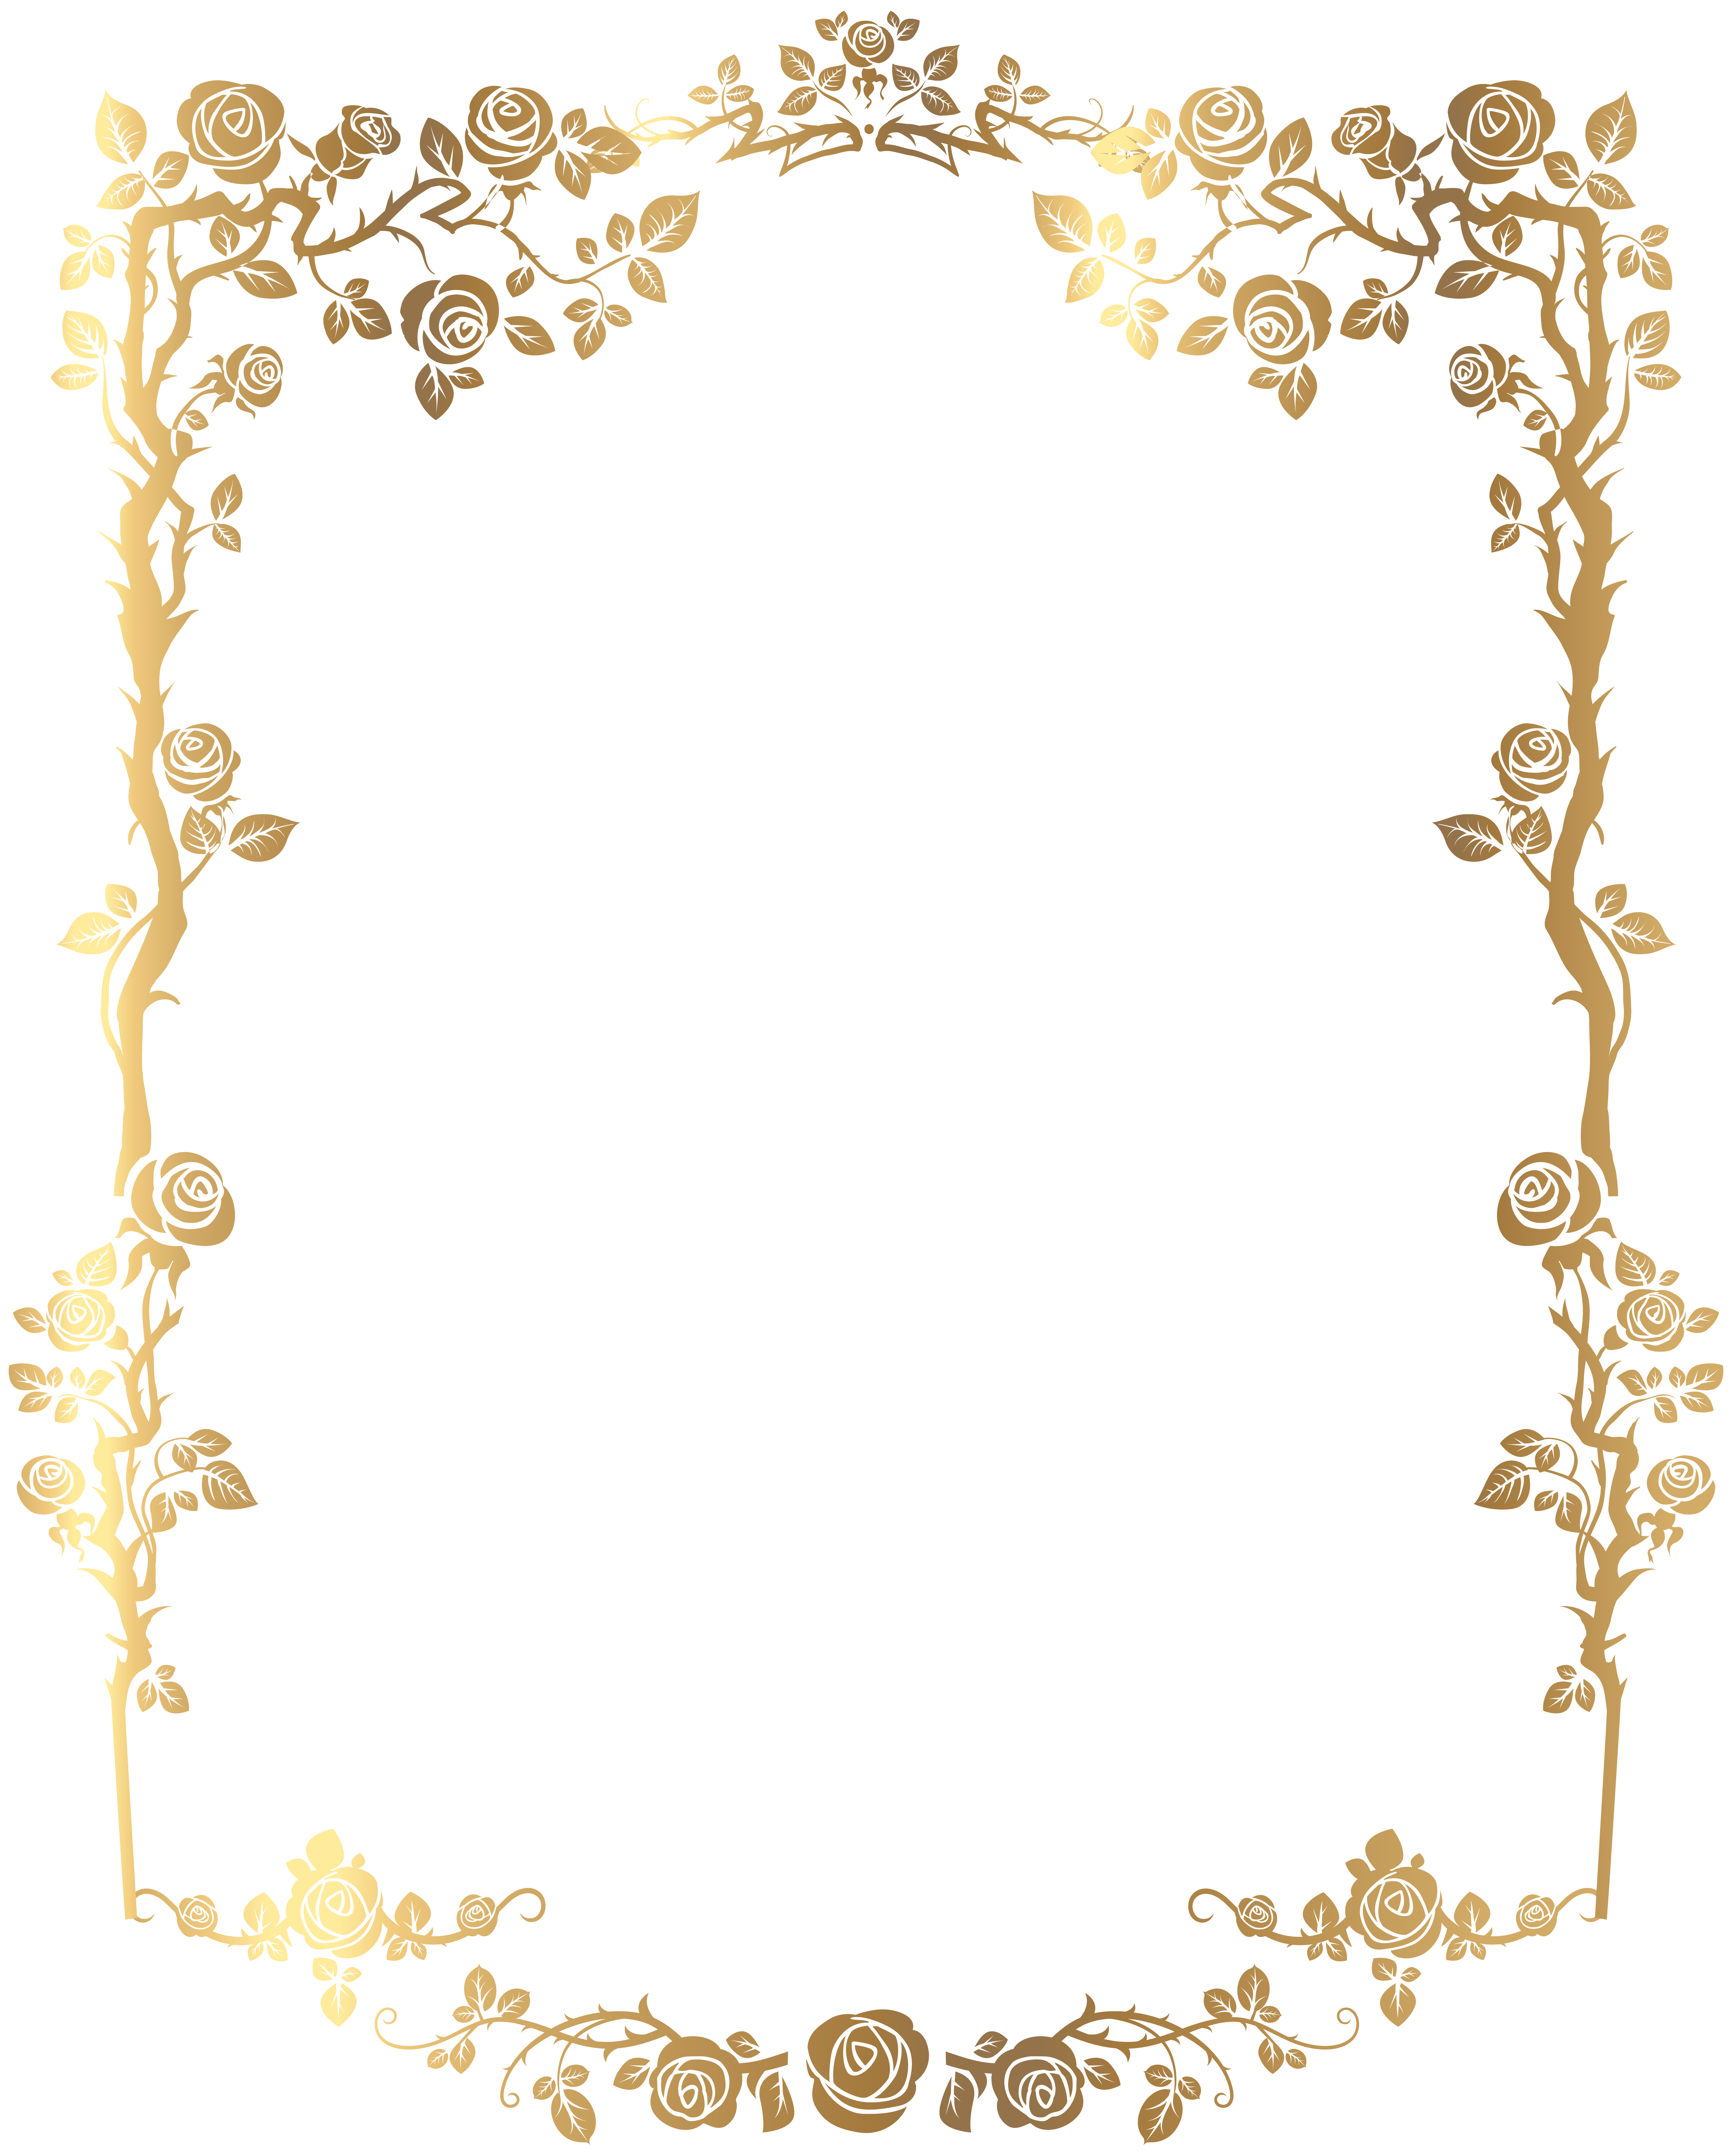 Frame clipart house picture on it clipart download Decorative Rose Frame PNG Clip Art Image | B&F-Goldy | Pinterest ... clipart download